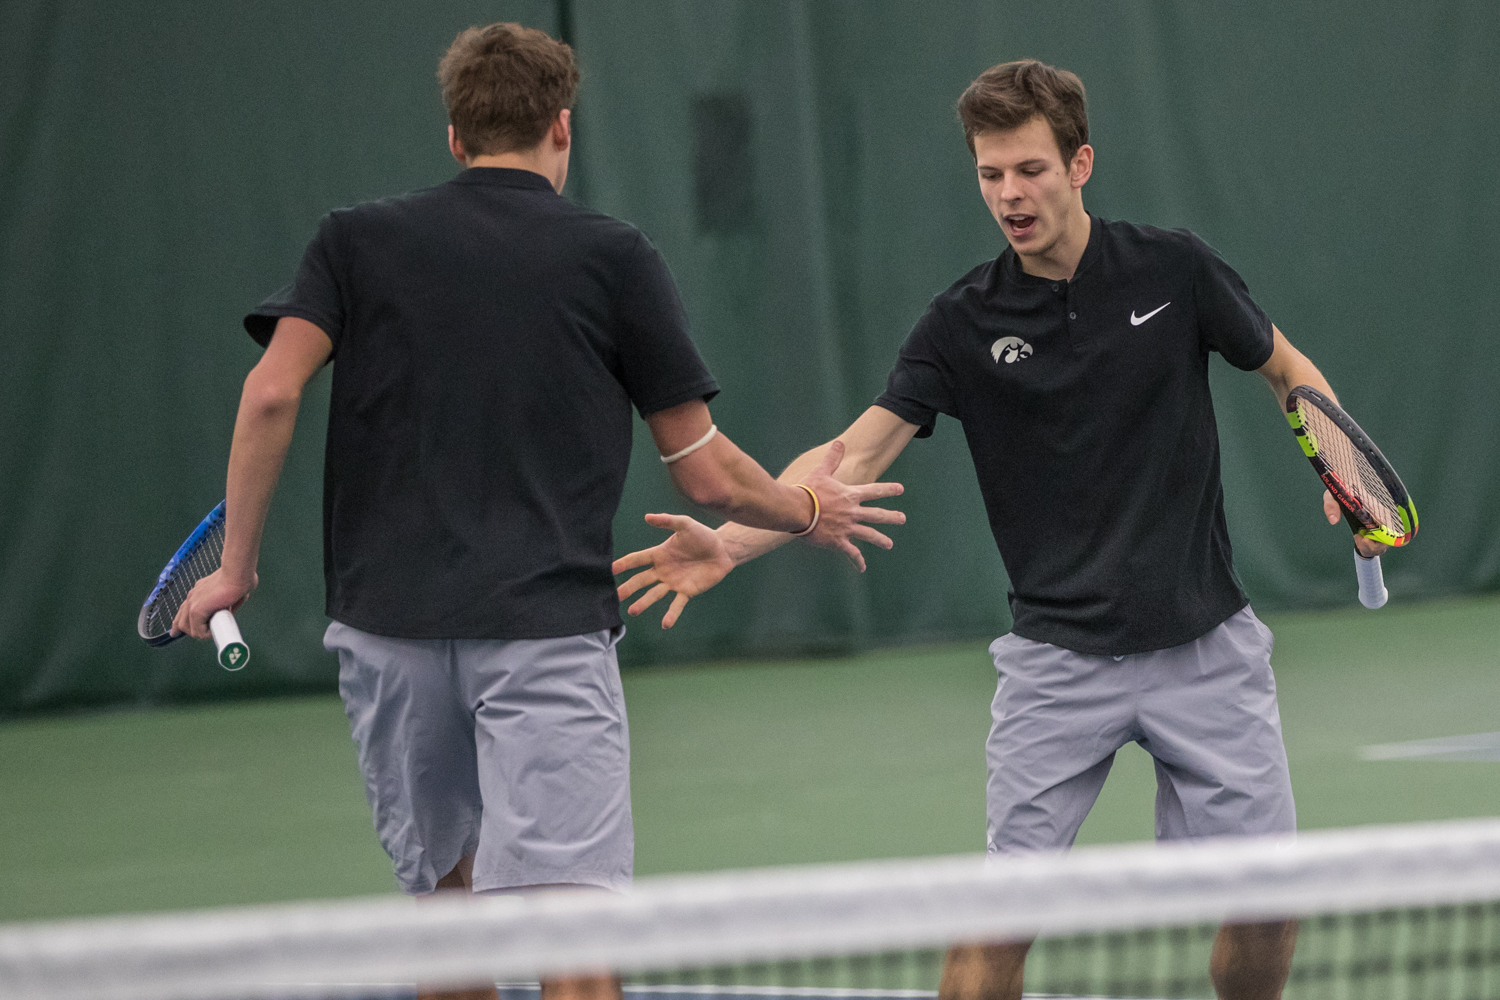 Iowa%27s+Piotr+Smietana+high-fives+Joe+Tyler+during+a+men%27s+tennis+match+between+Iowa+and+East+Tennessee+State+on+Friday%2C+January+25%2C+2019.+The+Hawkeyes+defeated+the+Buccaneers%2C+4-3.